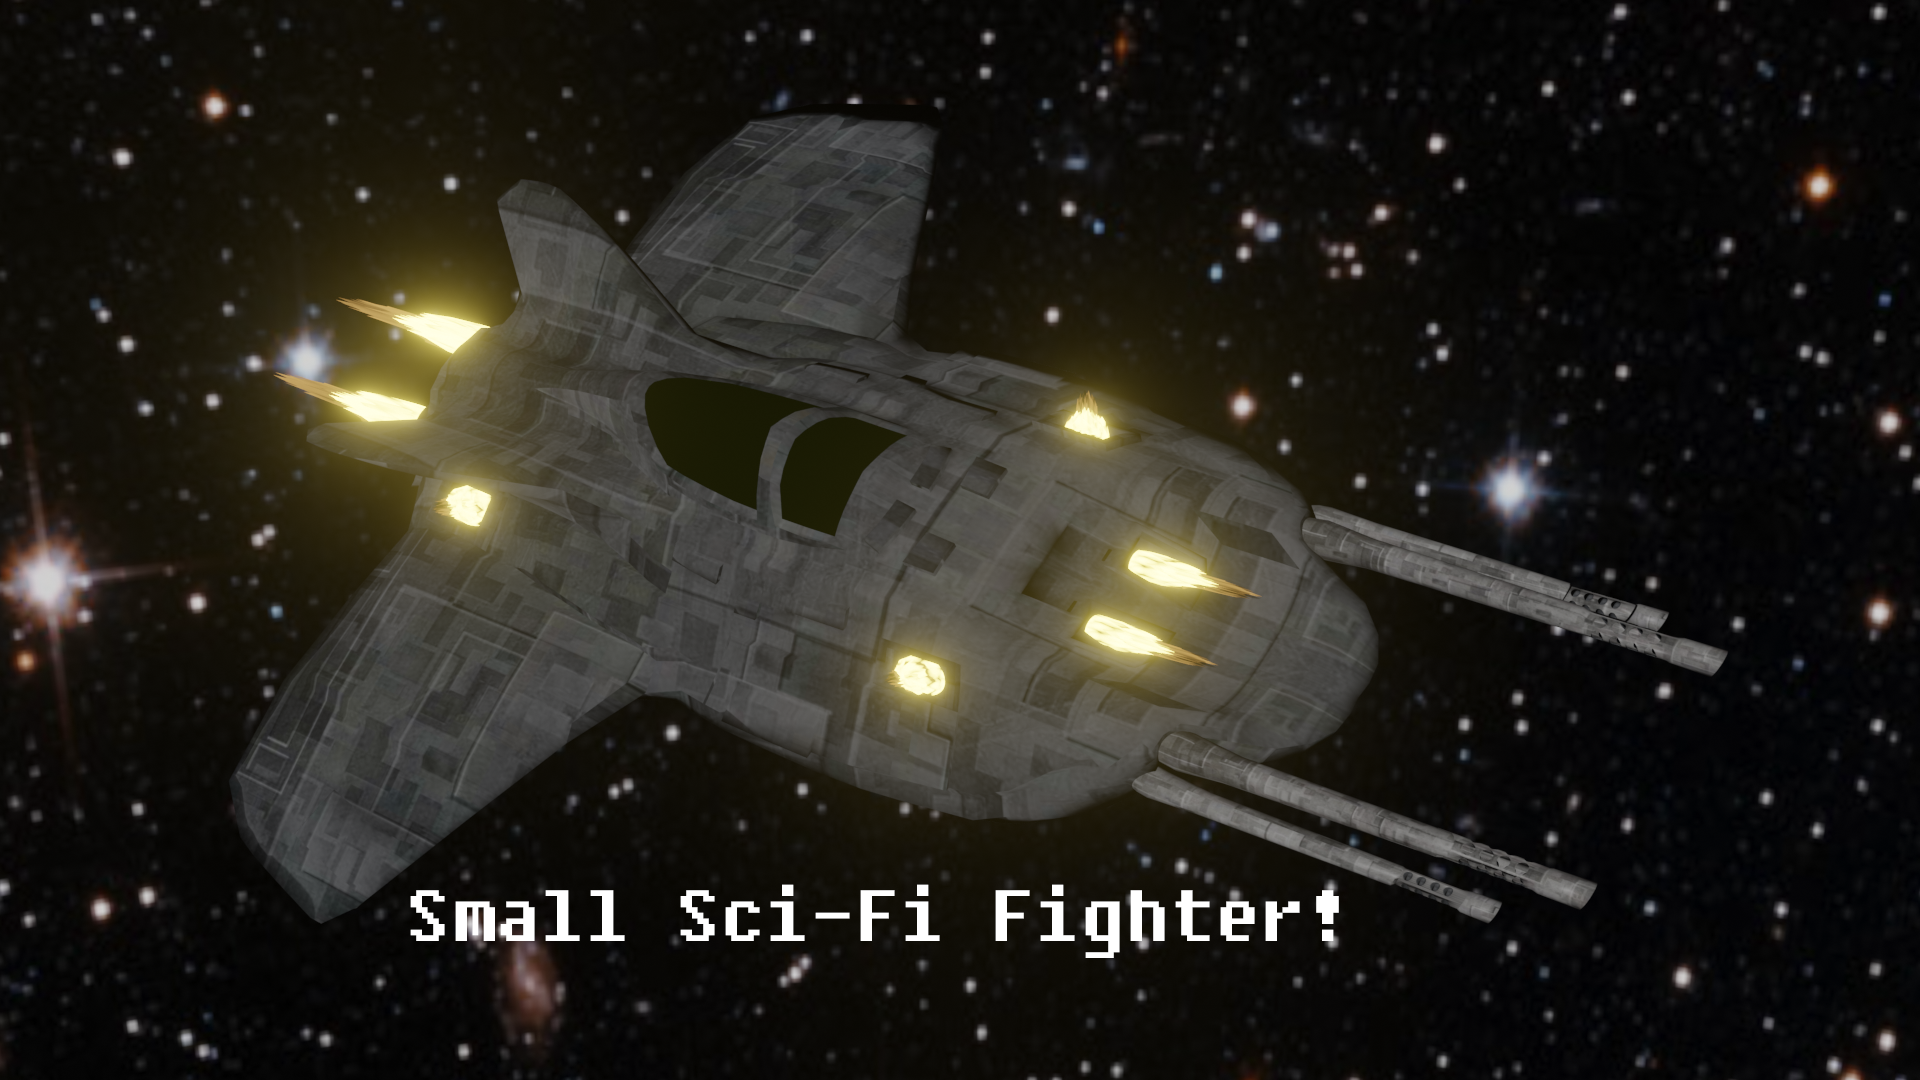 Small Sci-Fi Fighter preview image 1